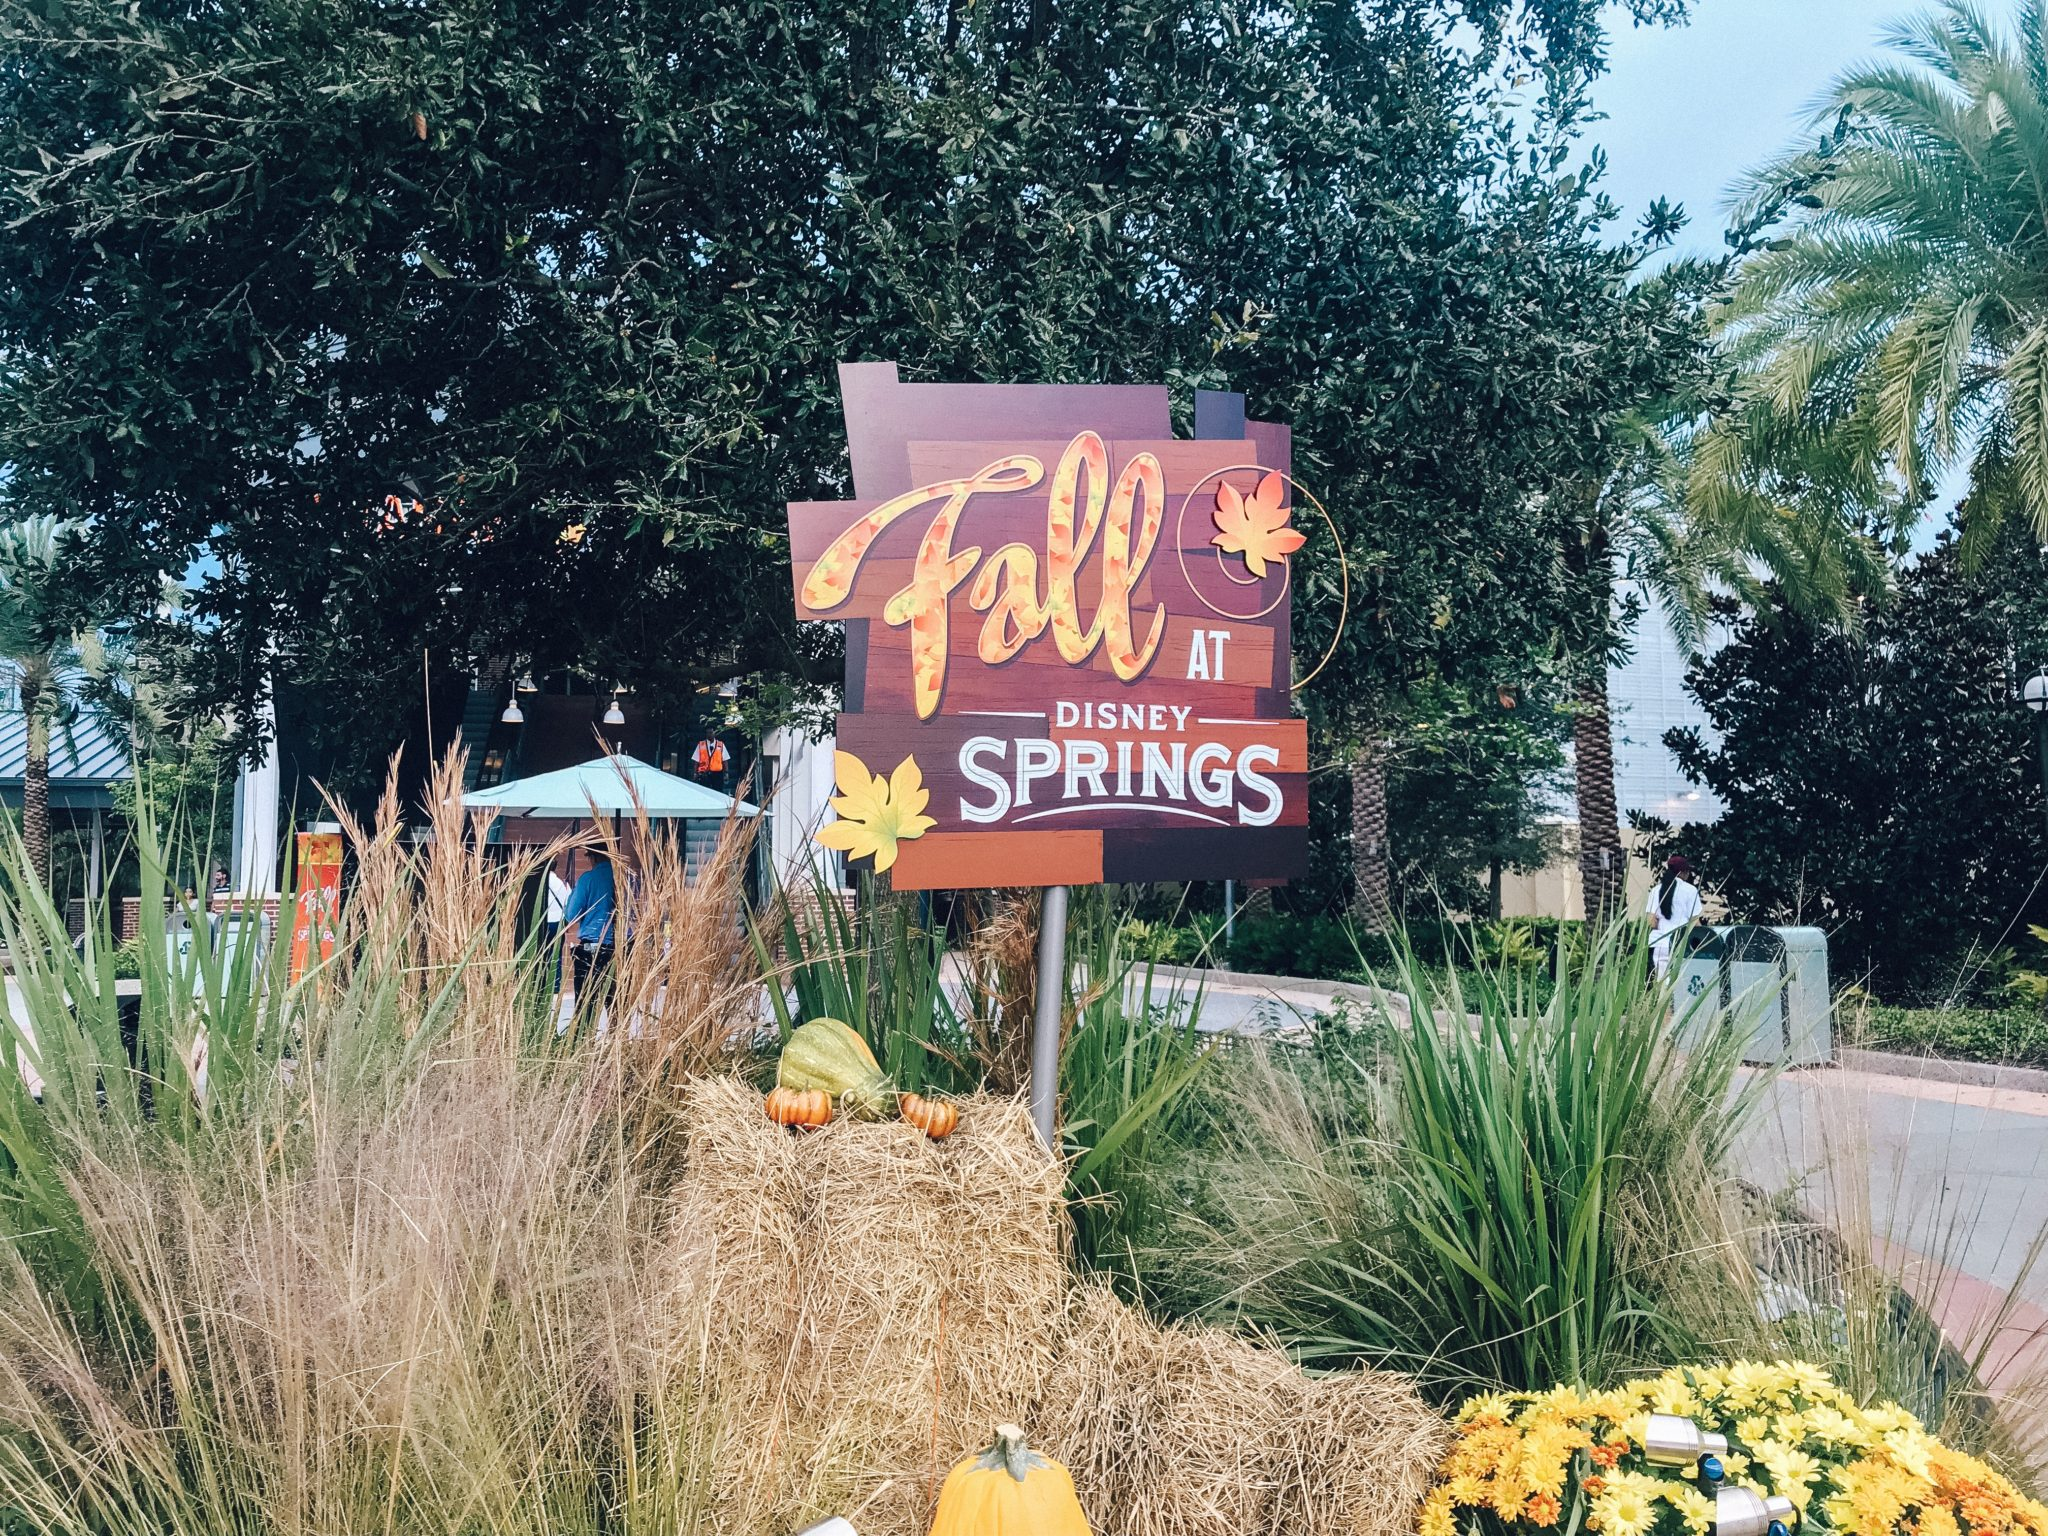 WHERE TO DINE AT DISNEY SPRINGS